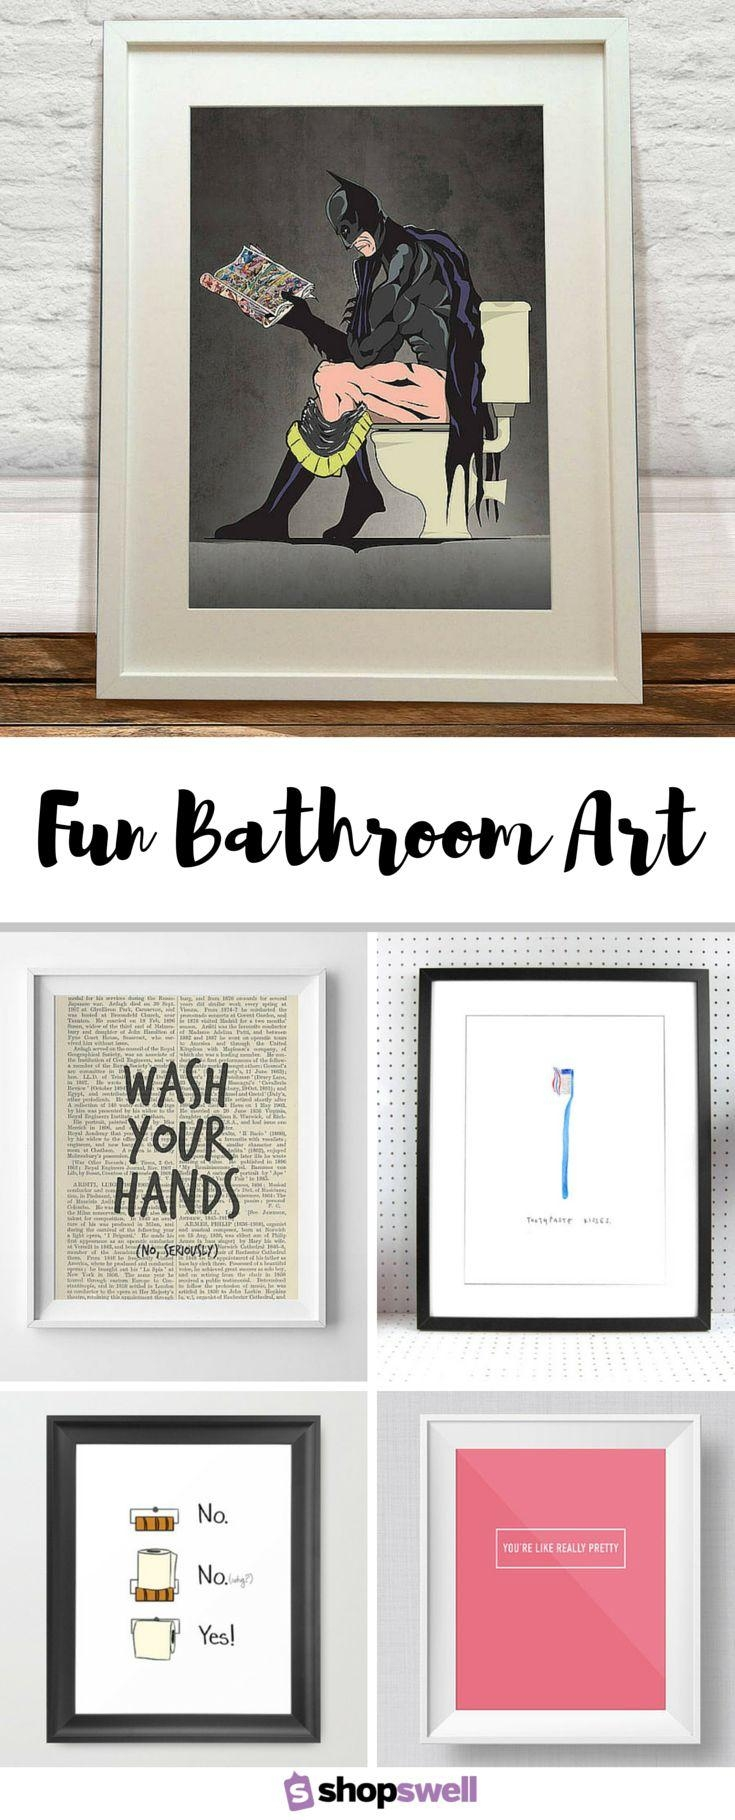 Best 25+ Bathroom Wall Art Ideas On Pinterest | Wall Decor For With Regard To Bathroom Wall Hangings (Image 14 of 20)